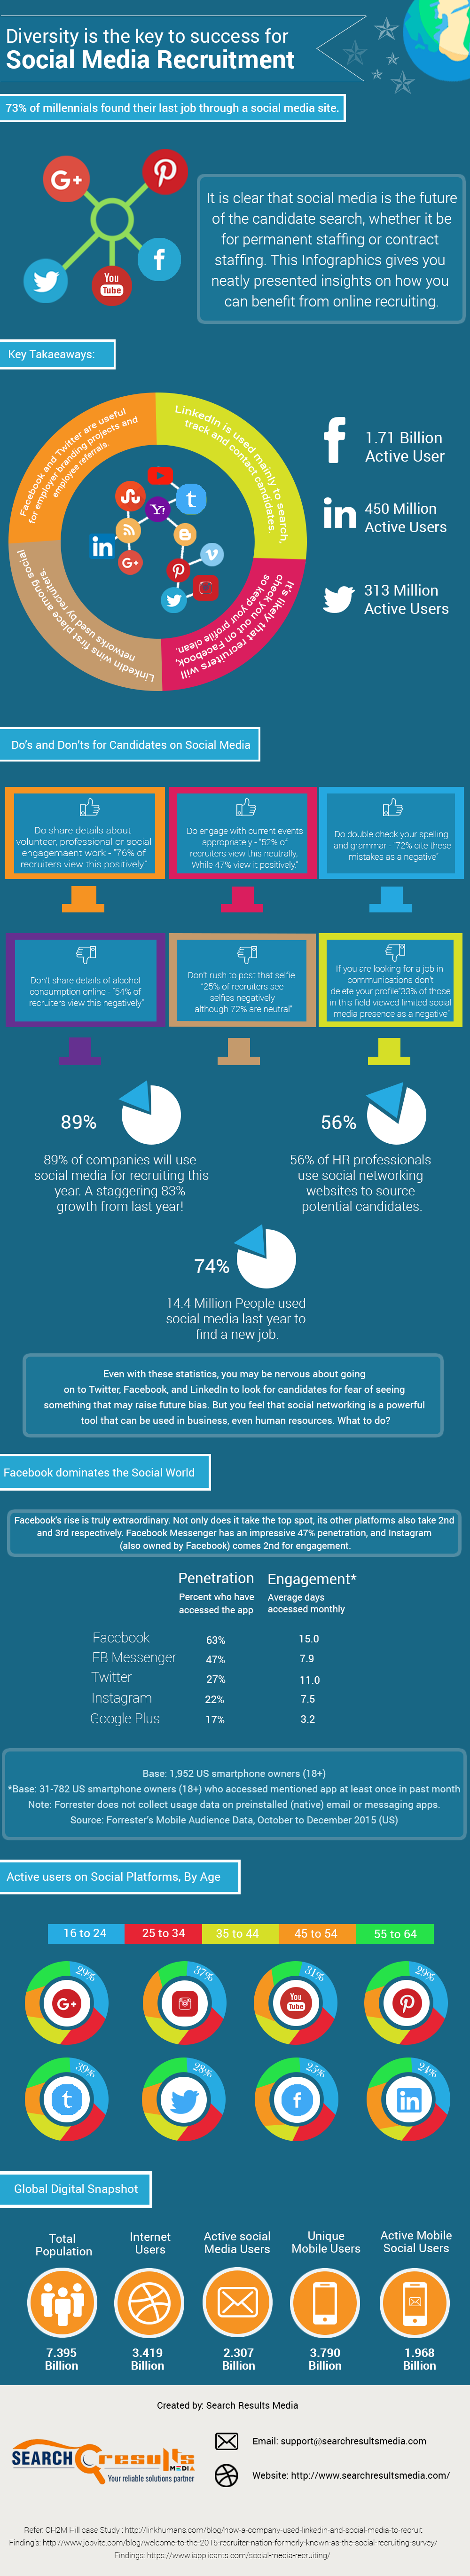 Diversity is the Key to sucess for Social Media Recruitment